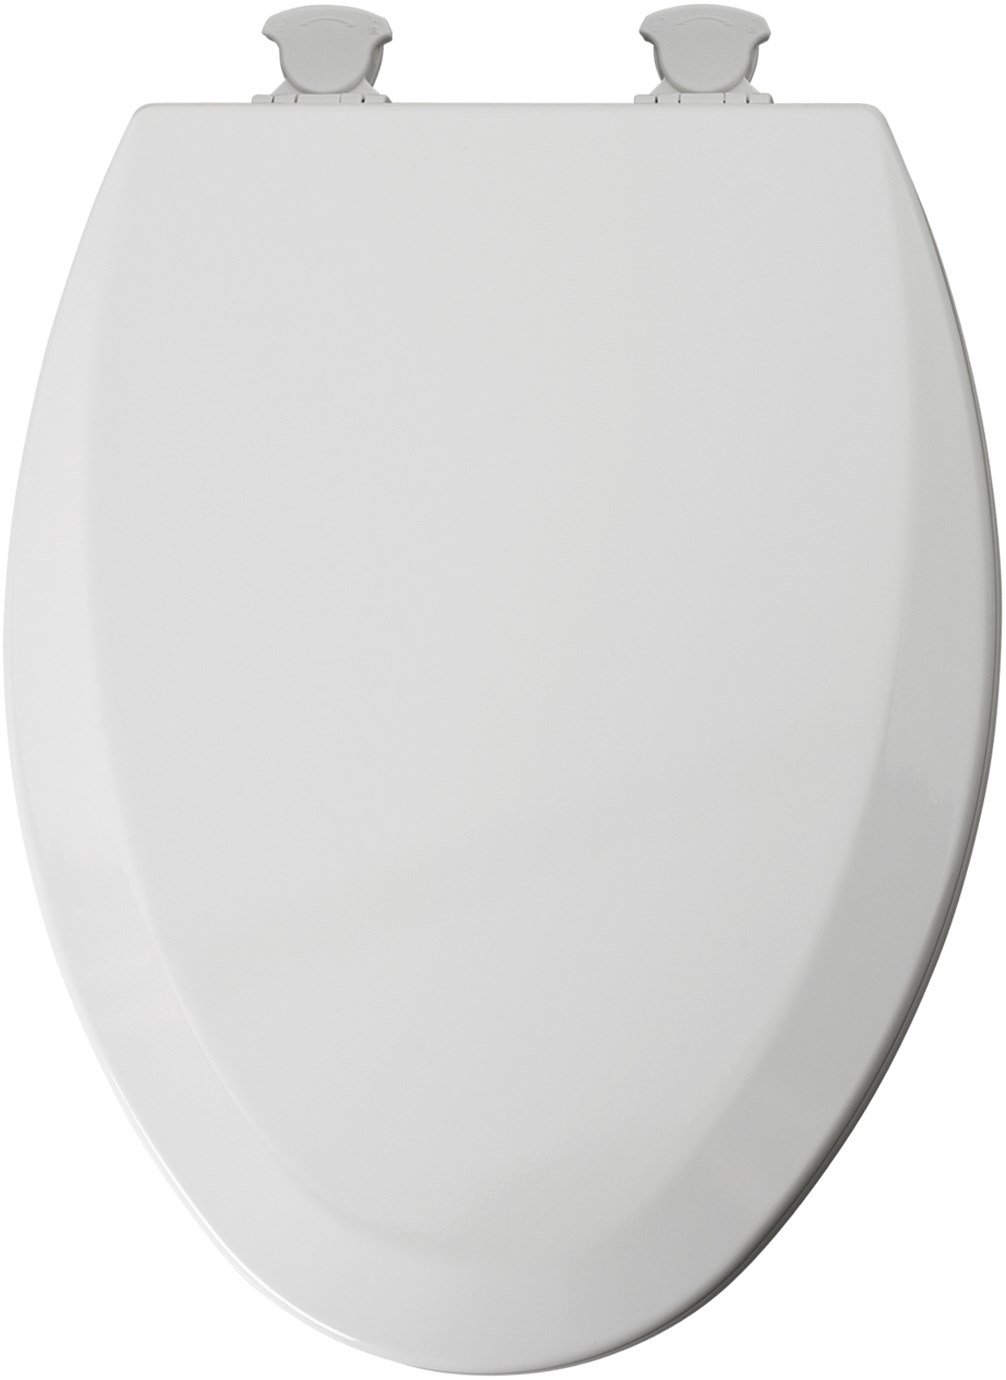 Mayfair 146EC 000 Molded Wood Toilet Seat with Lift-Off Hinges, Elongated, White